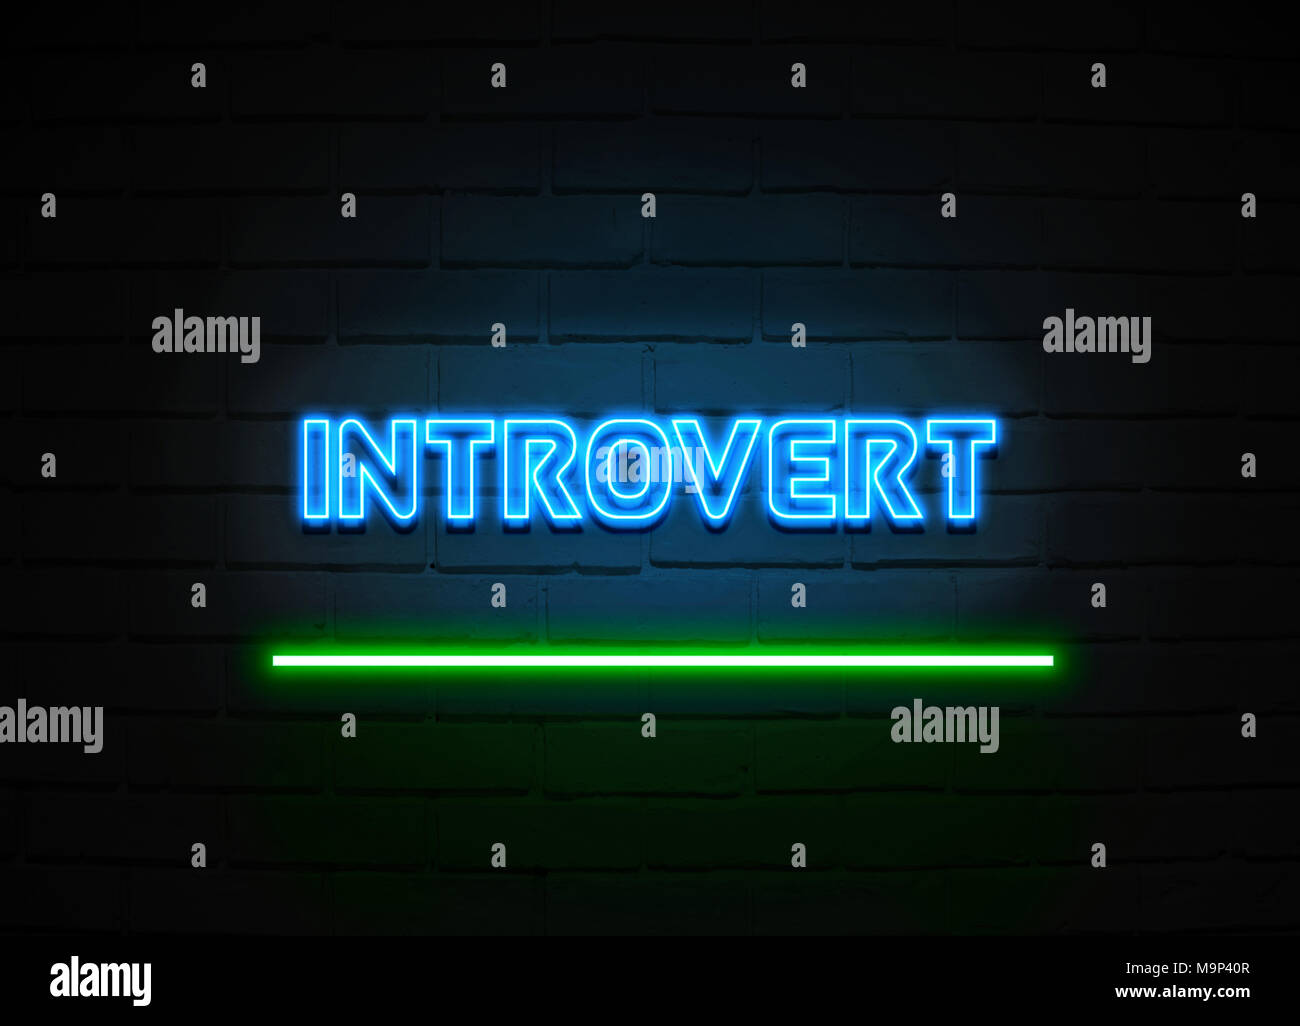 Introvert neon sign - Glowing Neon Sign on brickwall wall - 3D rendered royalty free stock illustration. - Stock Image